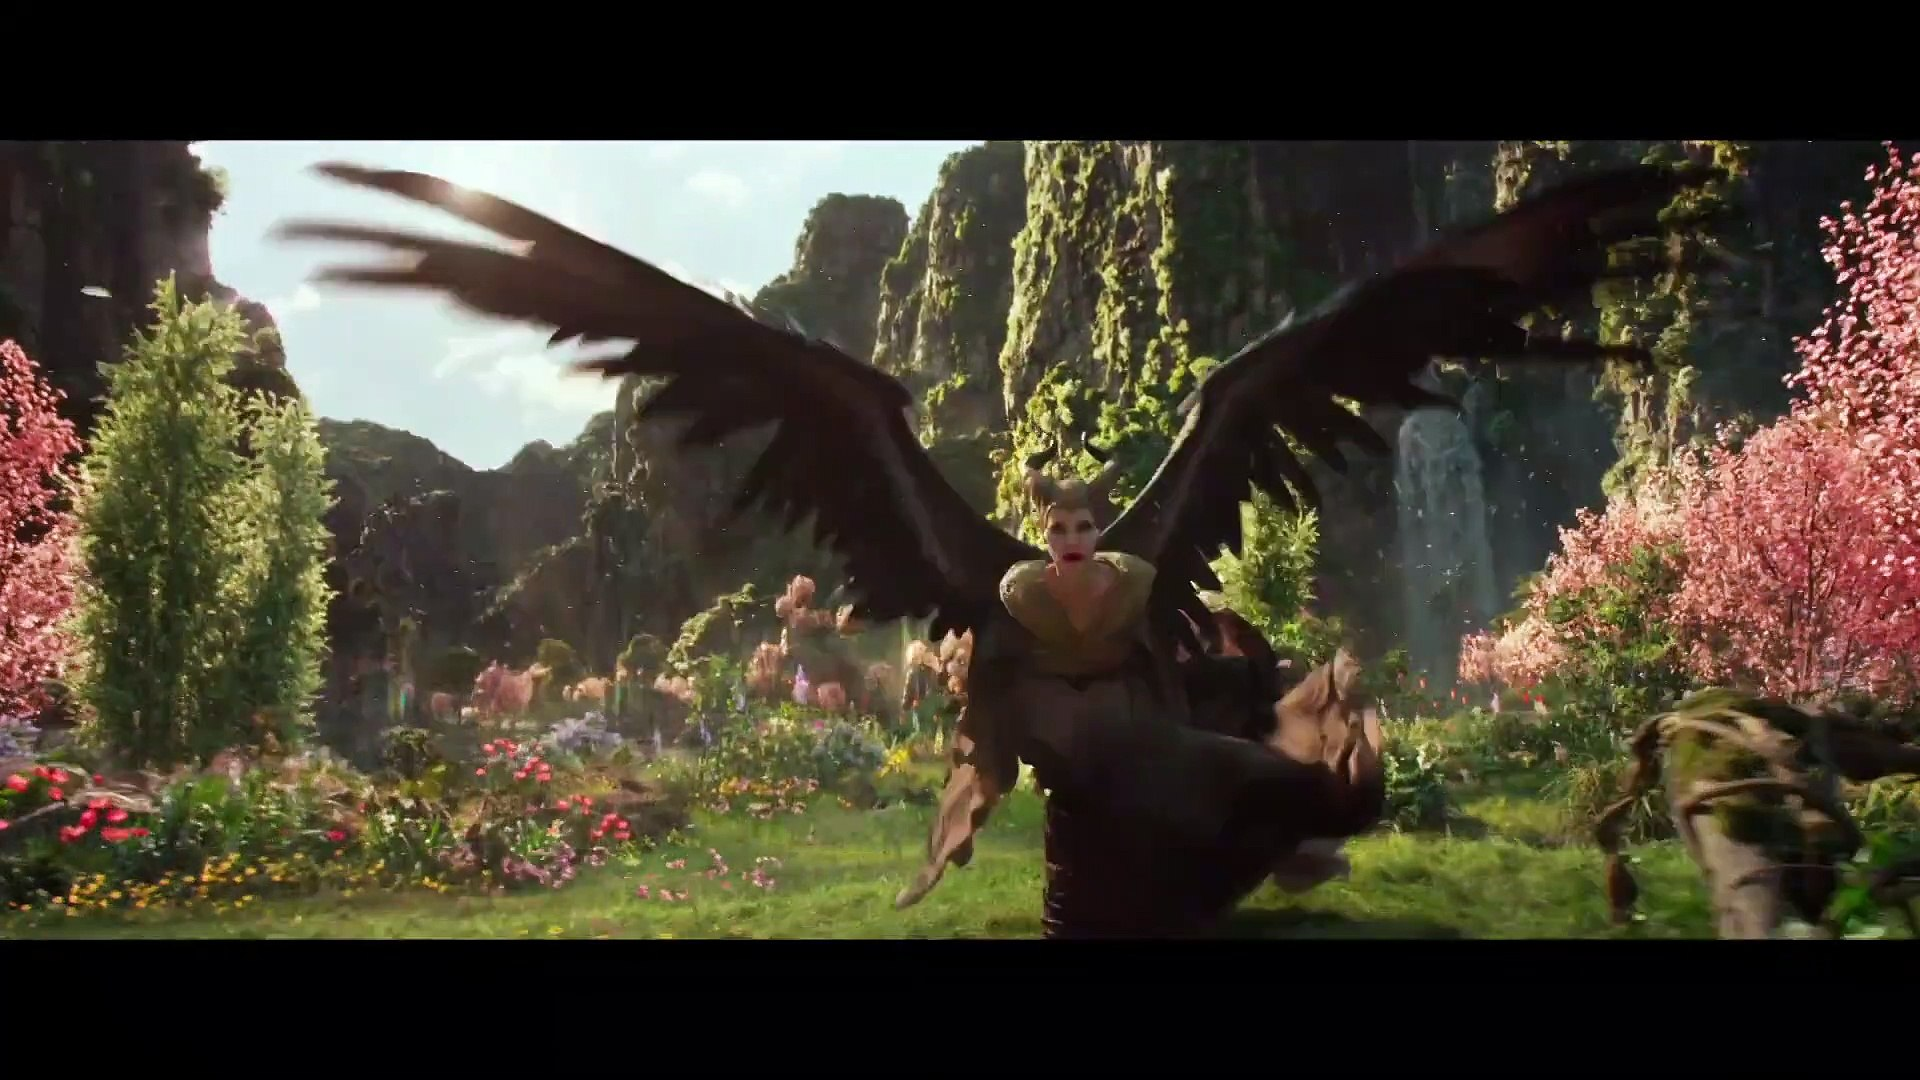 Get Watch Maleficent 2 Online Free Dailymotion Pics